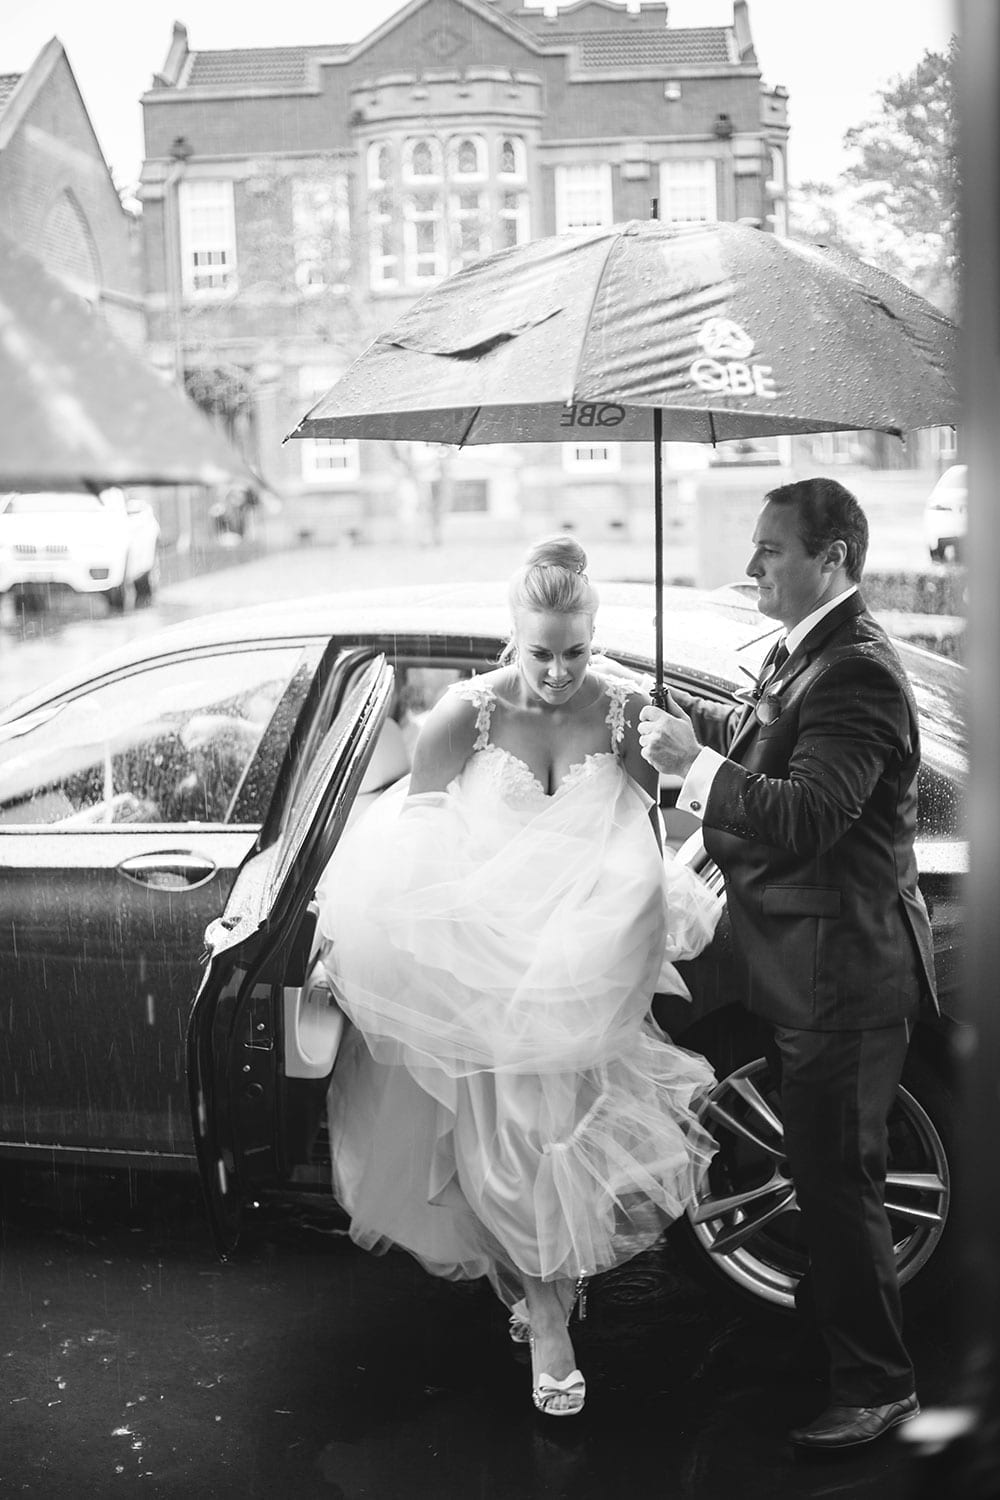 Real Weddings | Vinka Design | Real Brides Wearing Vinka Gowns | Kristen and Ben black and white getting out of car with umbrella